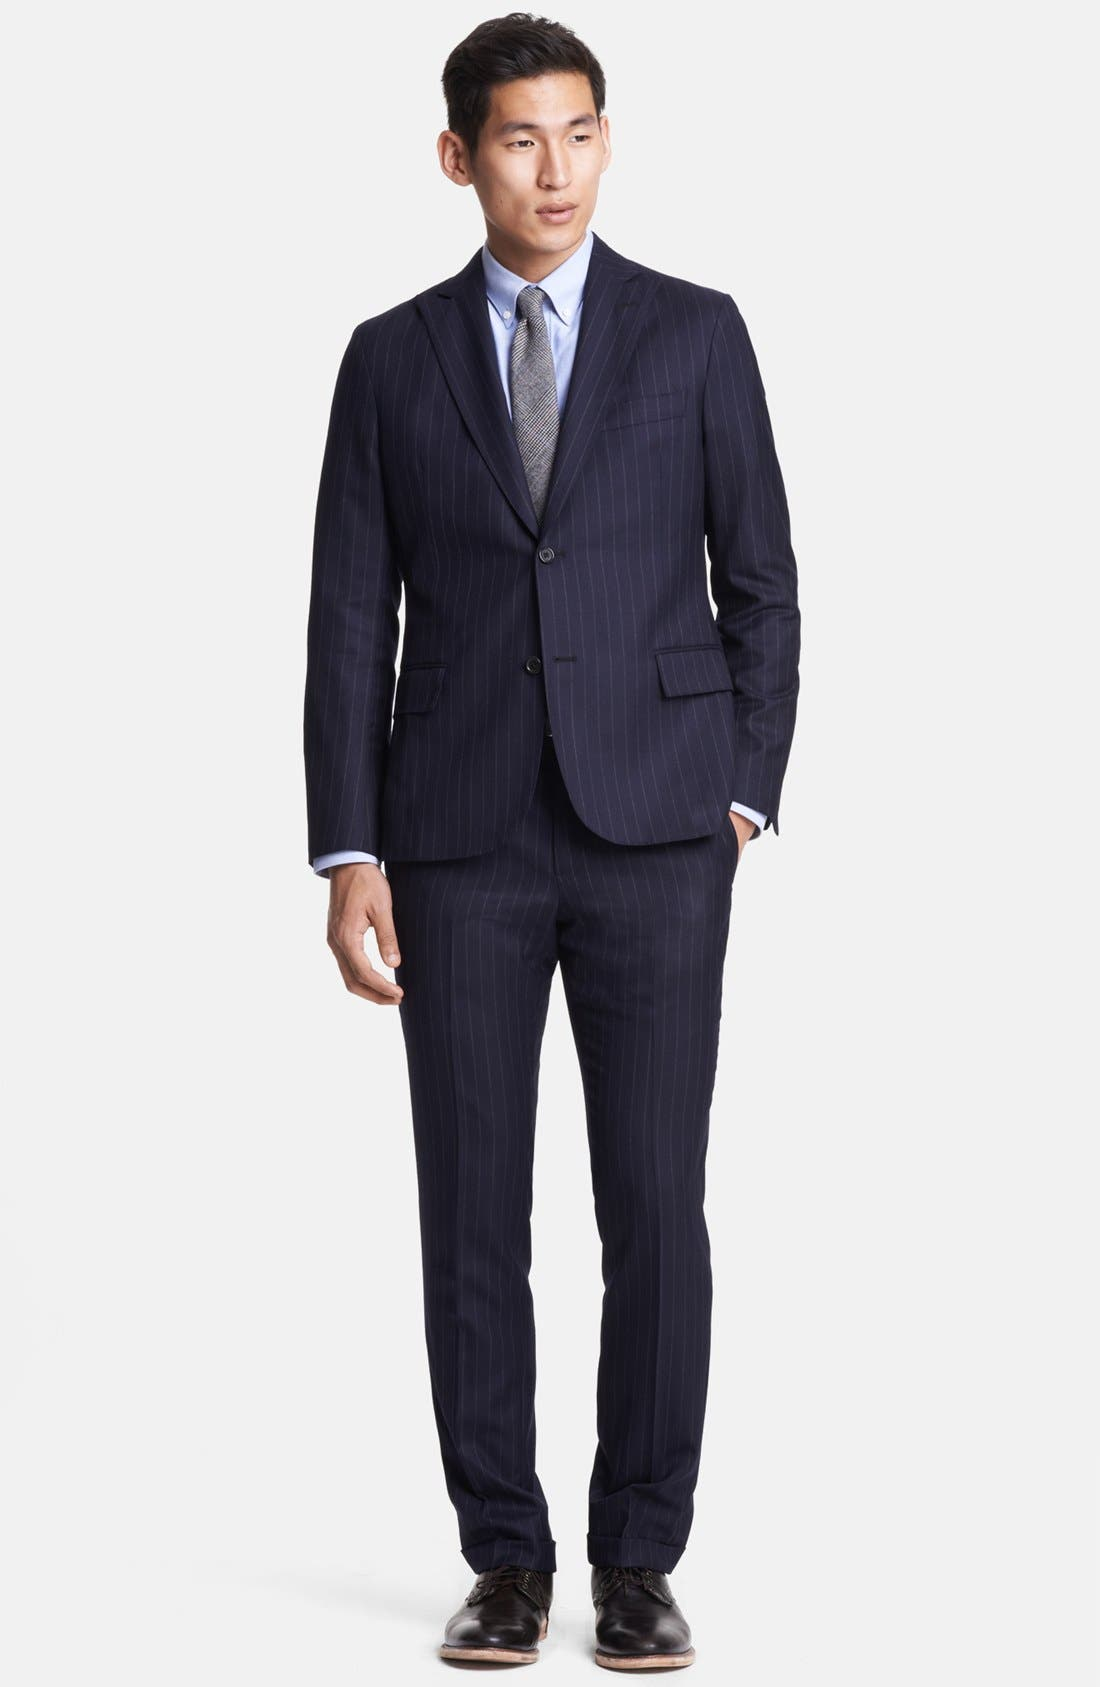 Alternate Image 1 Selected - Todd Snyder Navy Pinstripe Wool Suit